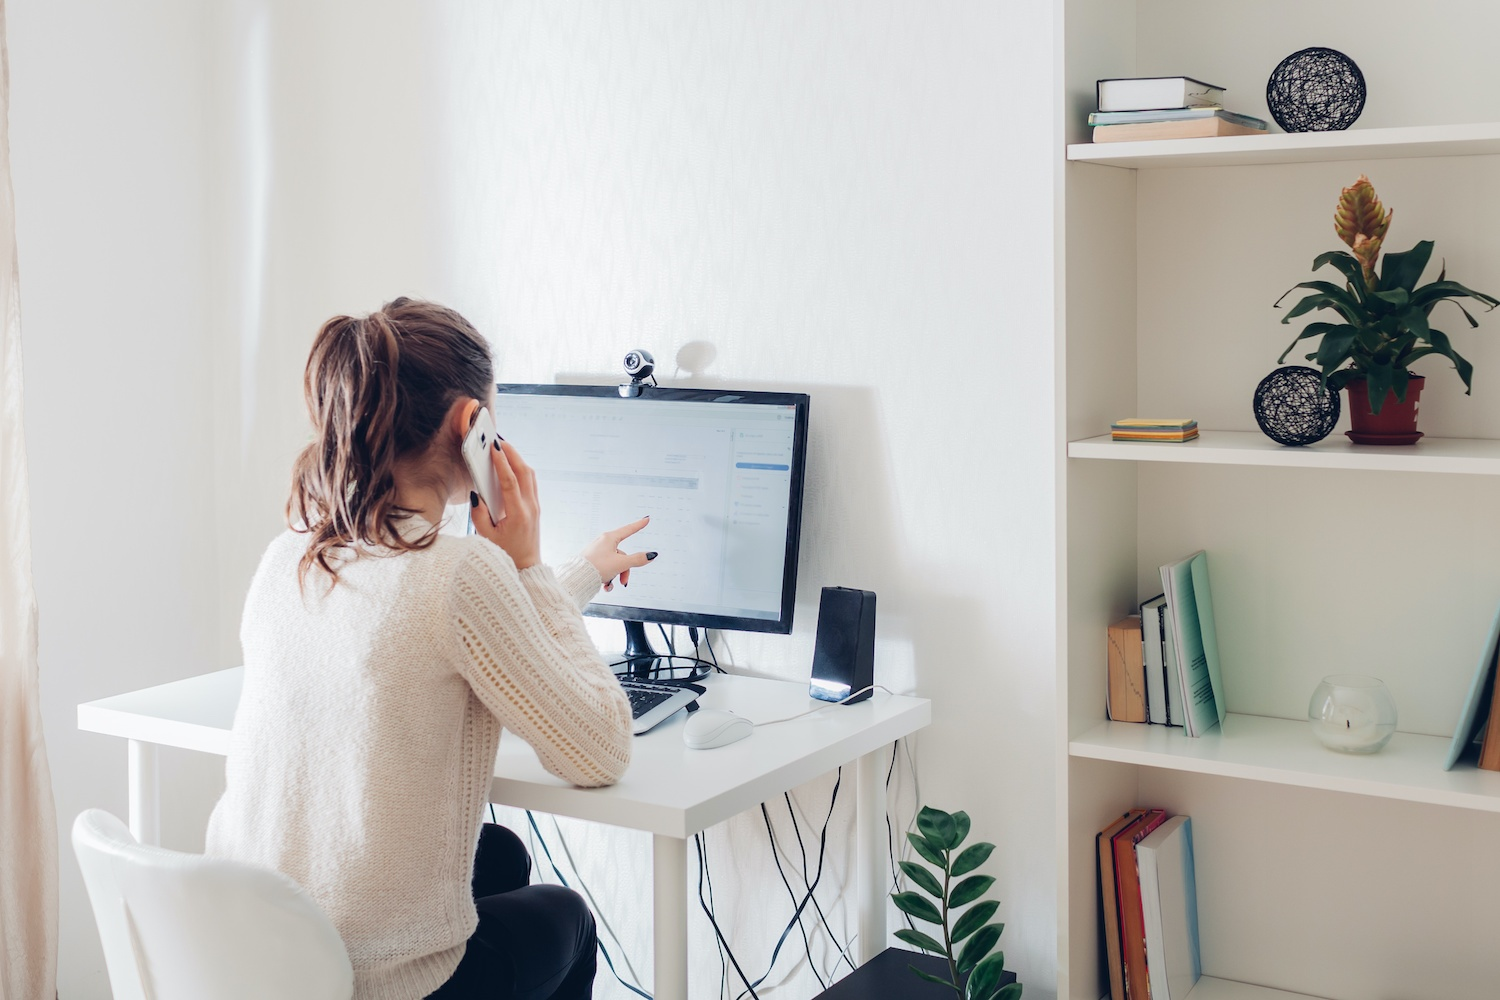 13 easy tips if you're new to working from home